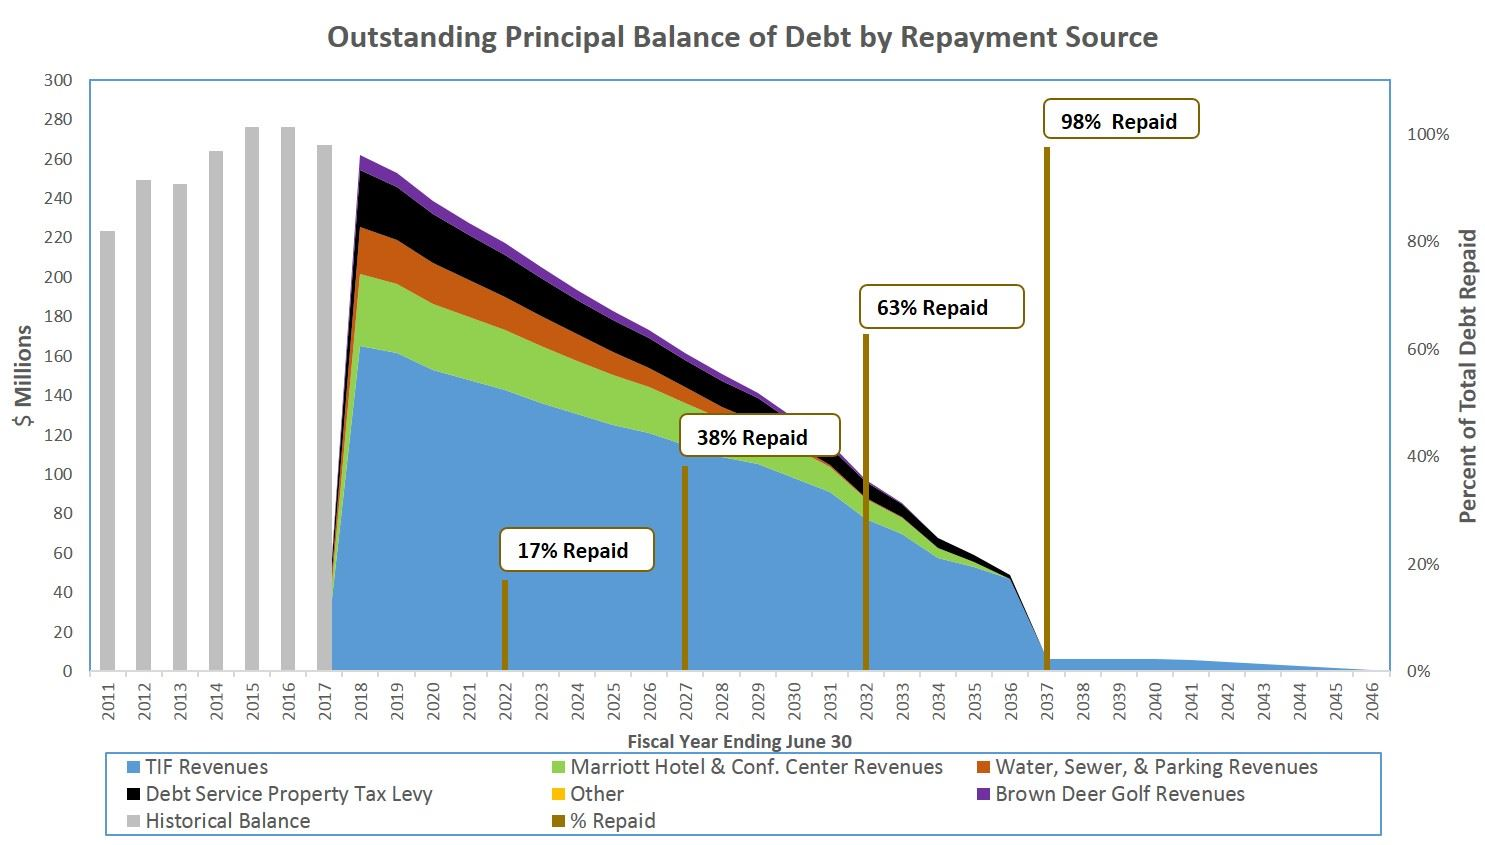 Coralville Outstanding Principal Balance of Debt by Repayment Source